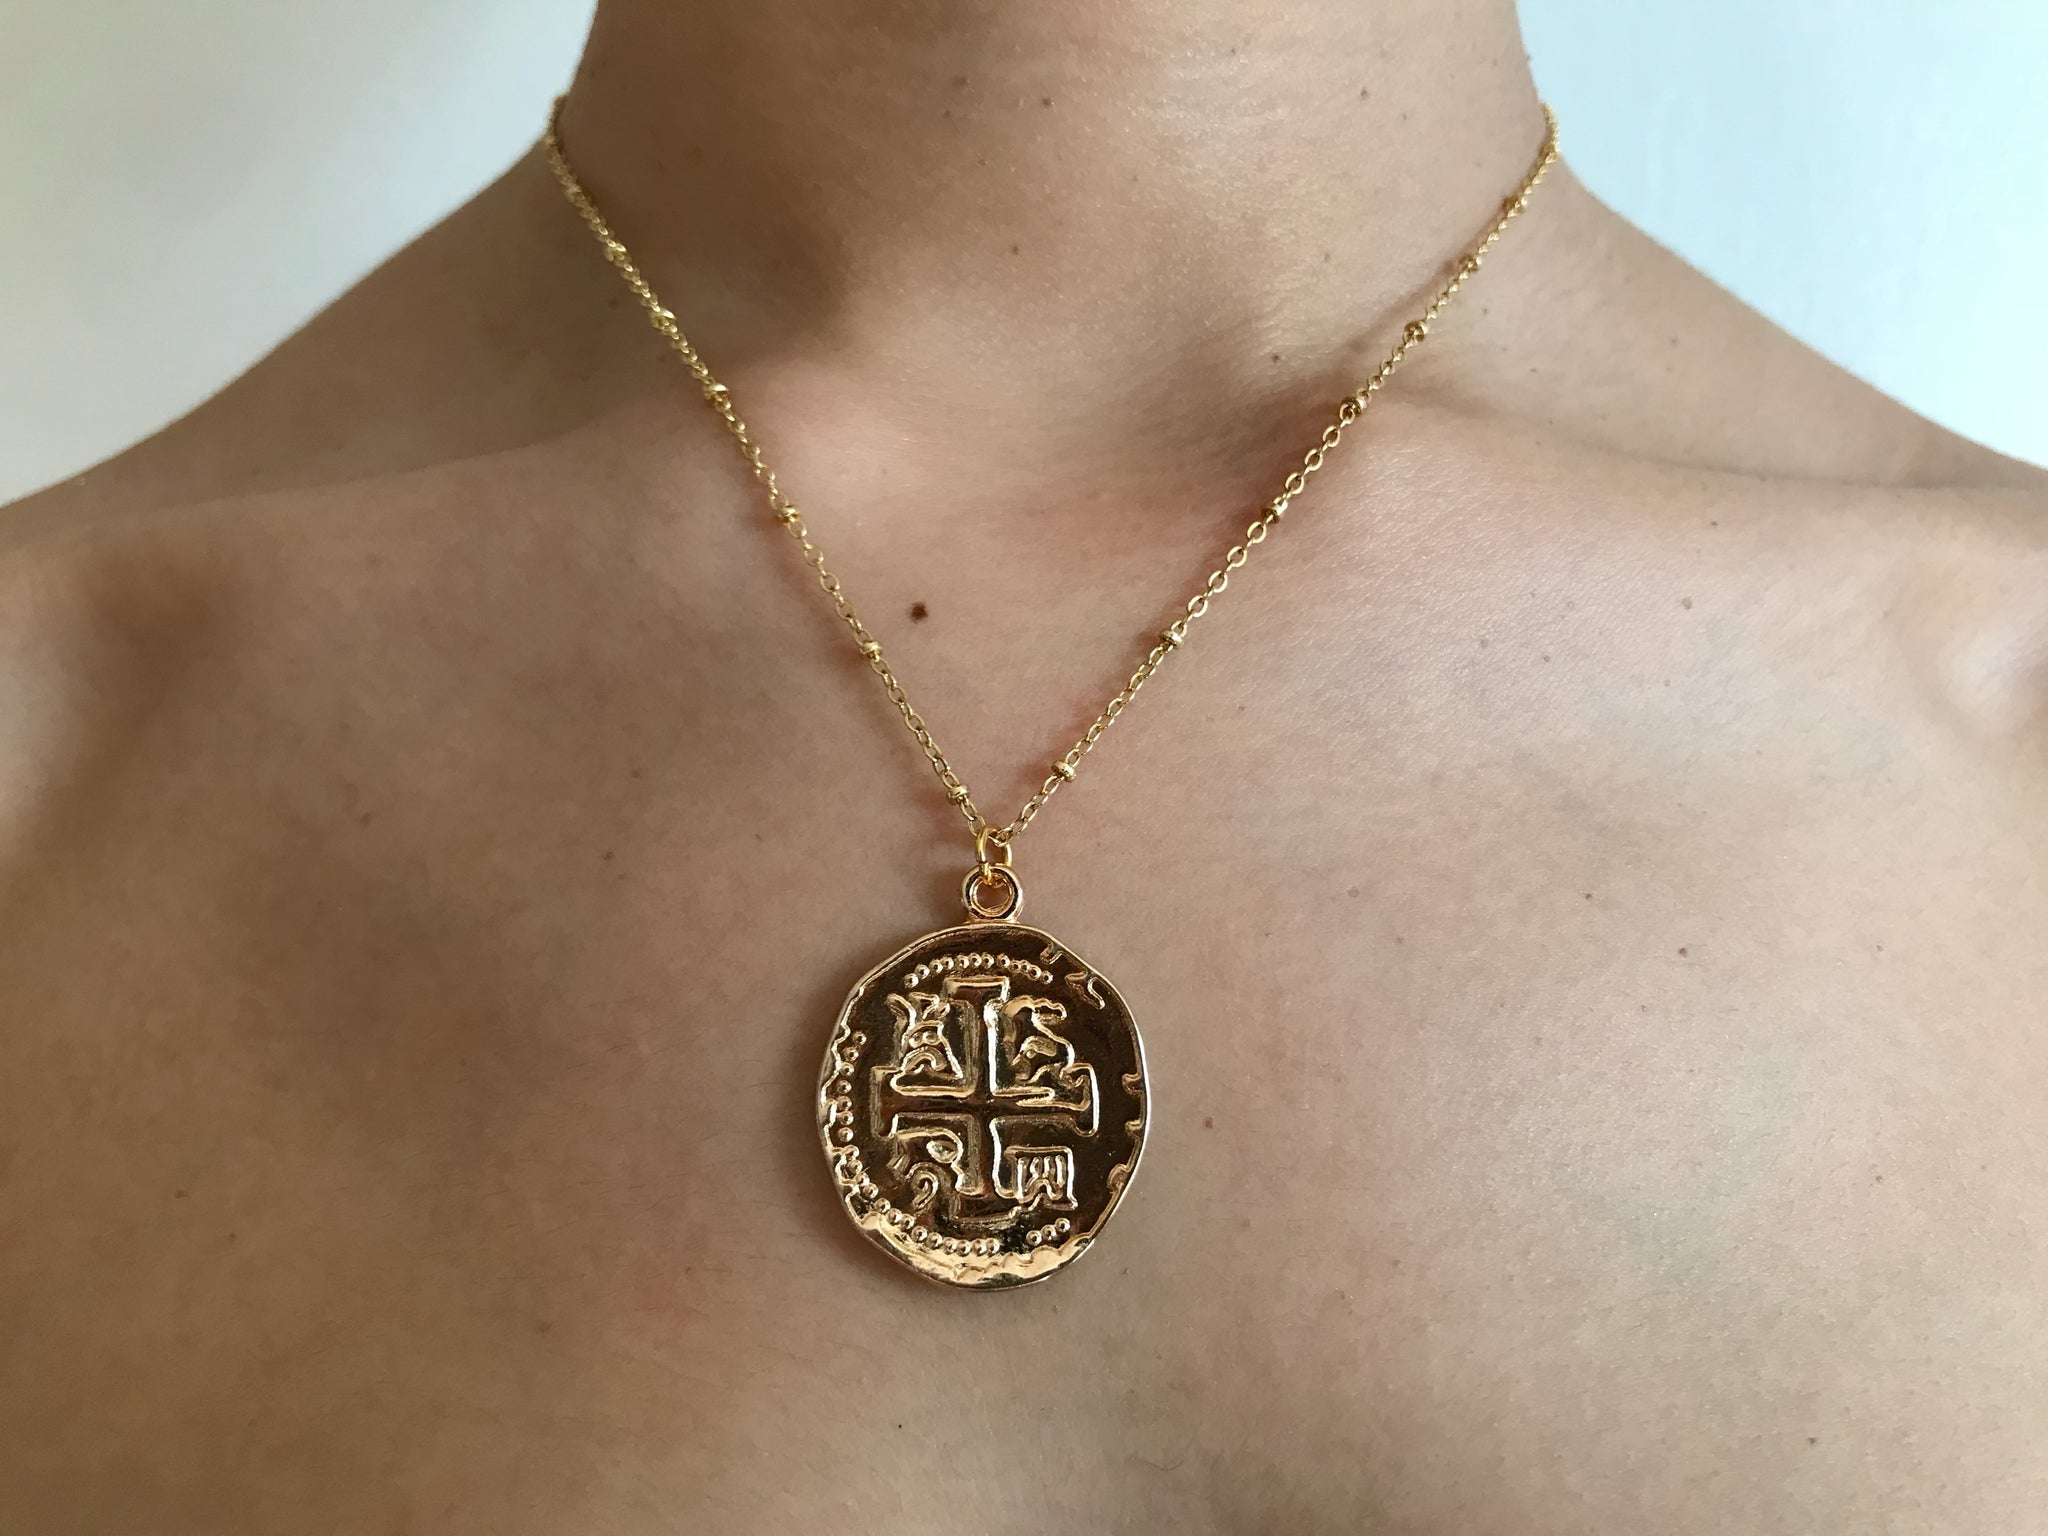 Large gold coin charm, gold charm, large charm necklace, gold coin necklace, coin jewelry, double sided coin chain